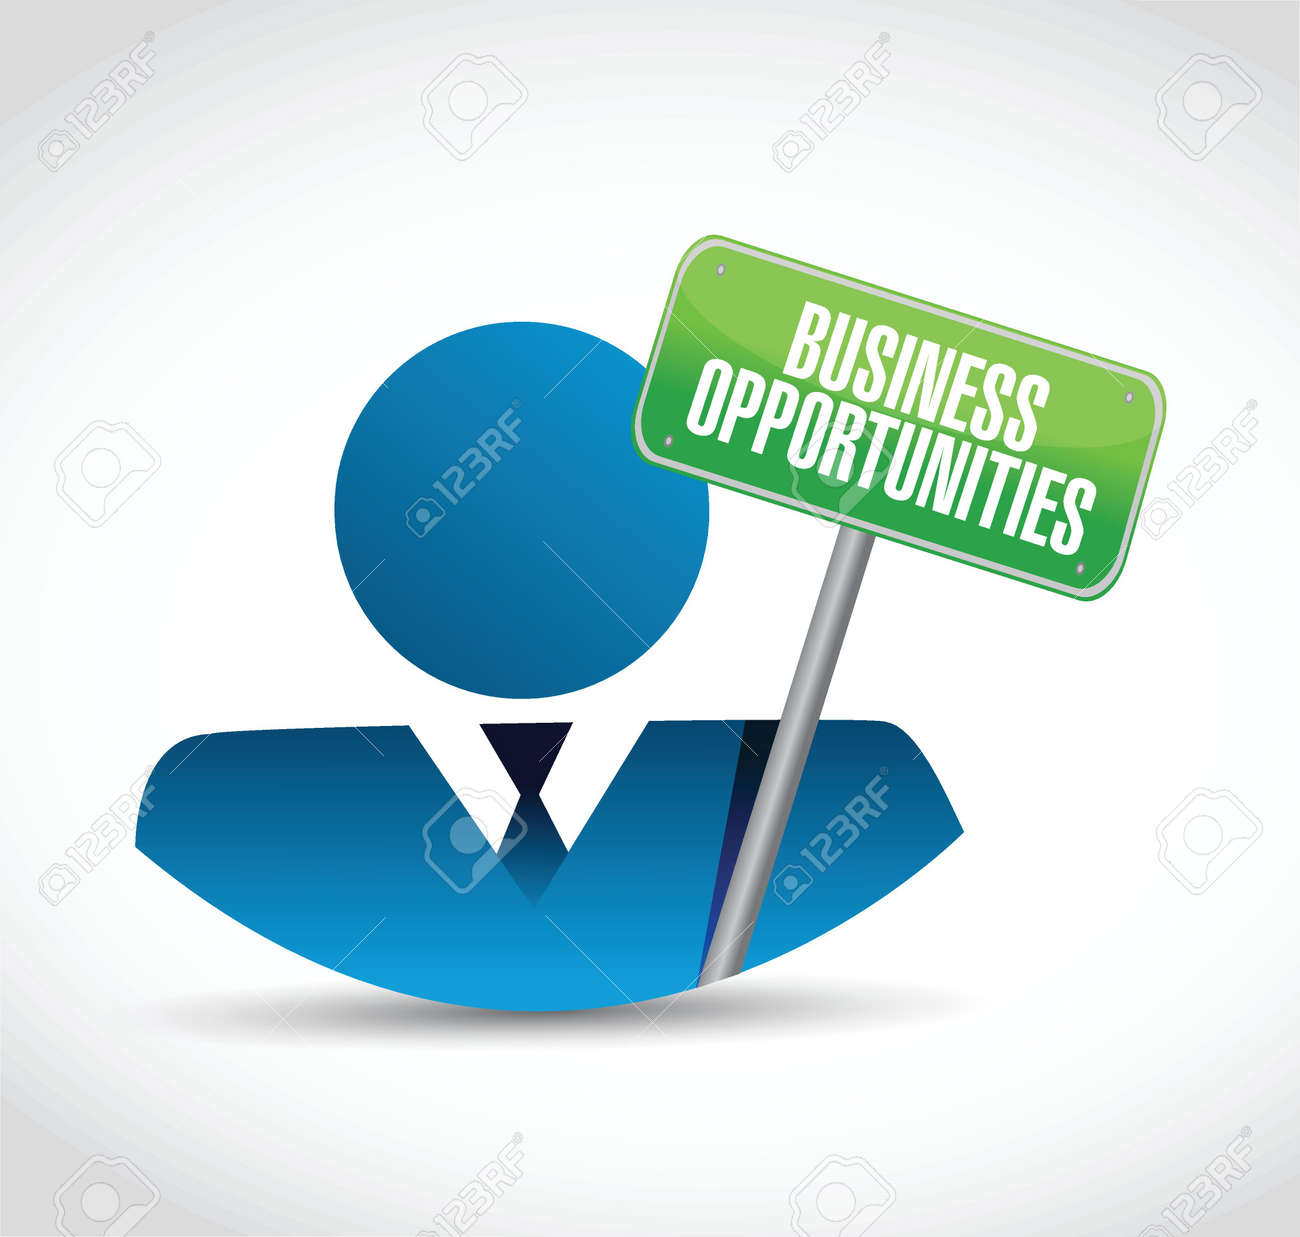 Research business opportunities